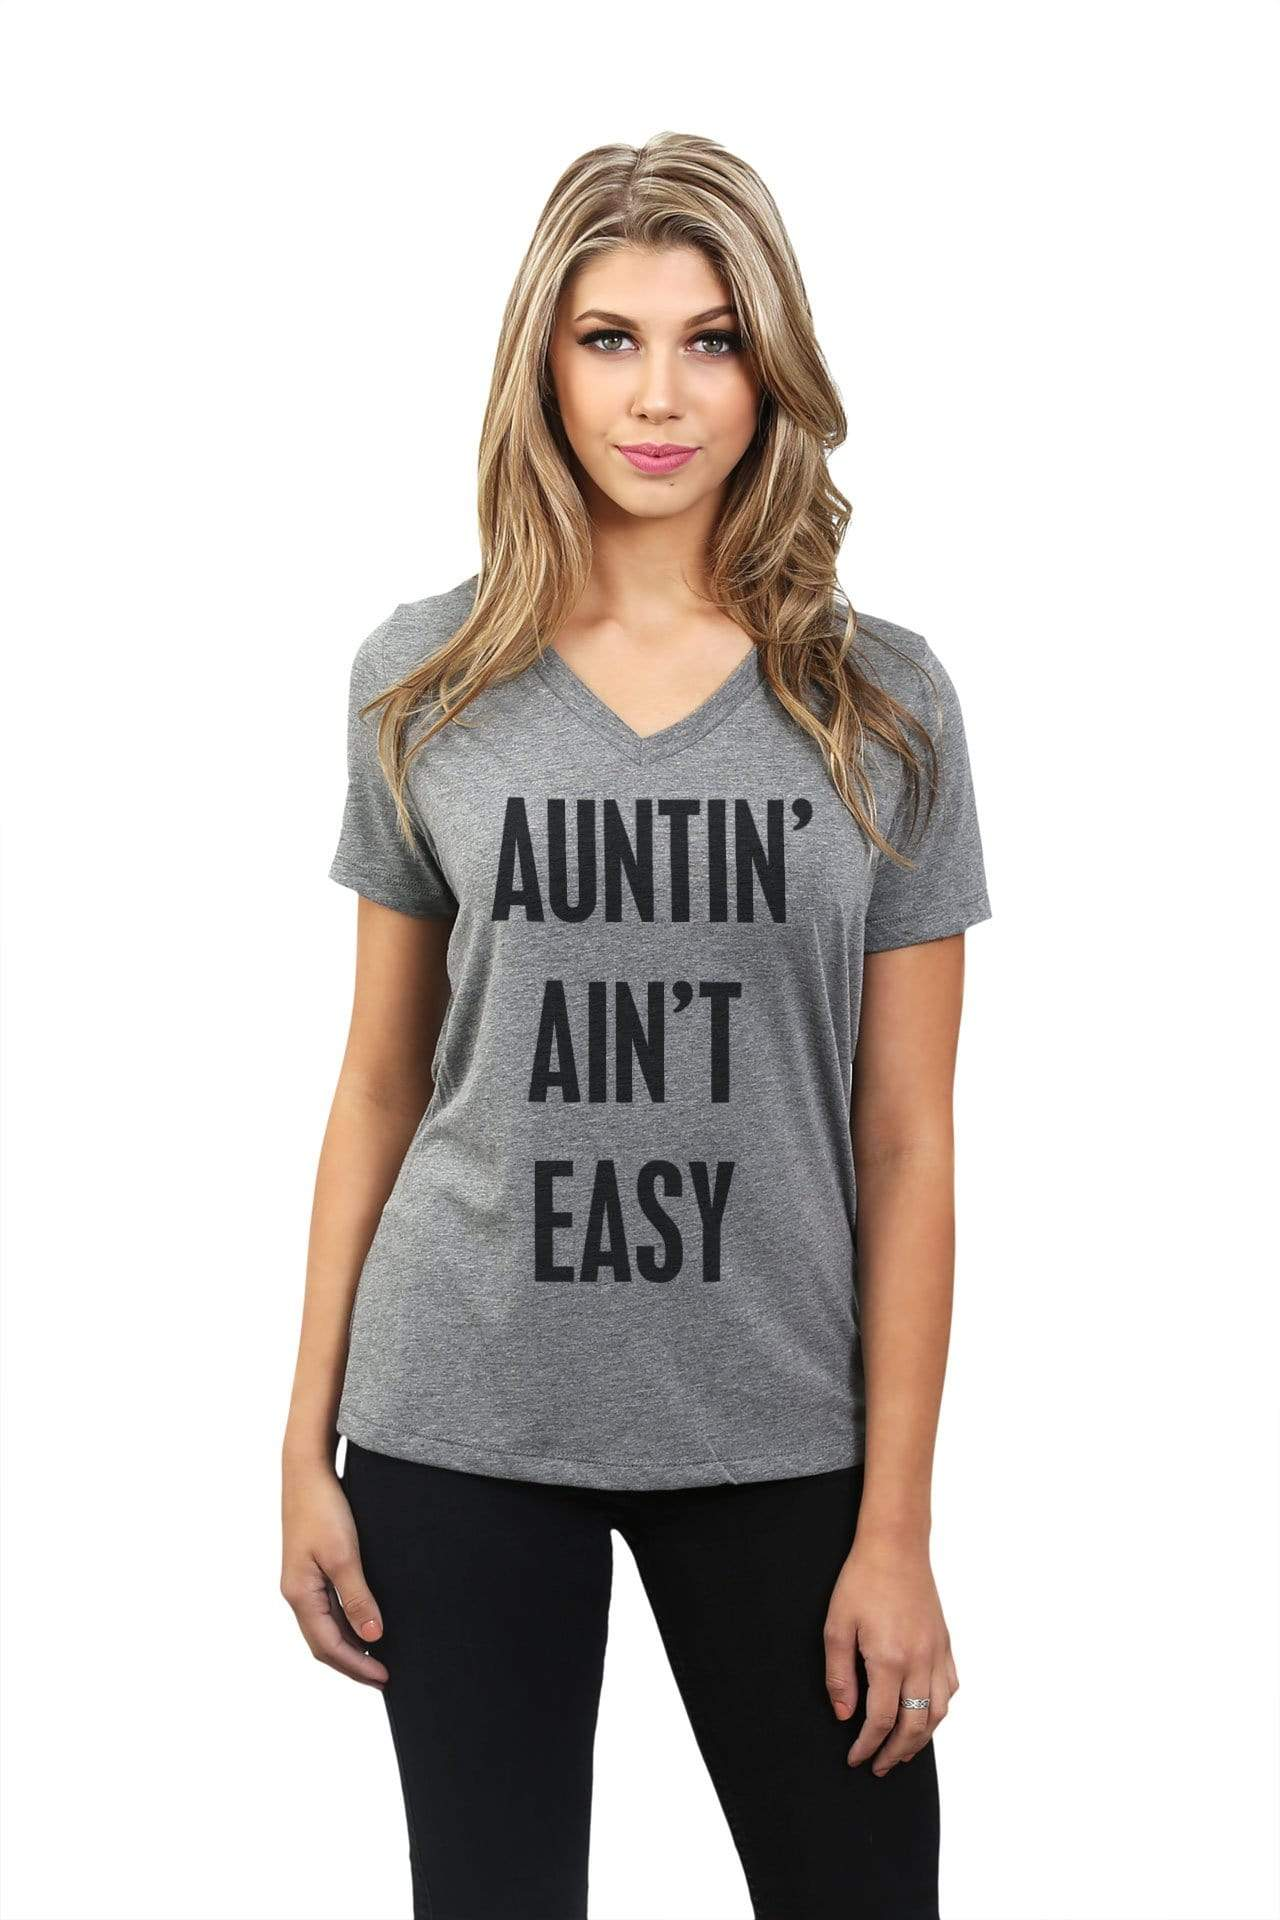 Auntin' Ain't Easy - Thread Tank | Stories You Can Wear | T-Shirts, Tank Tops and Sweatshirts